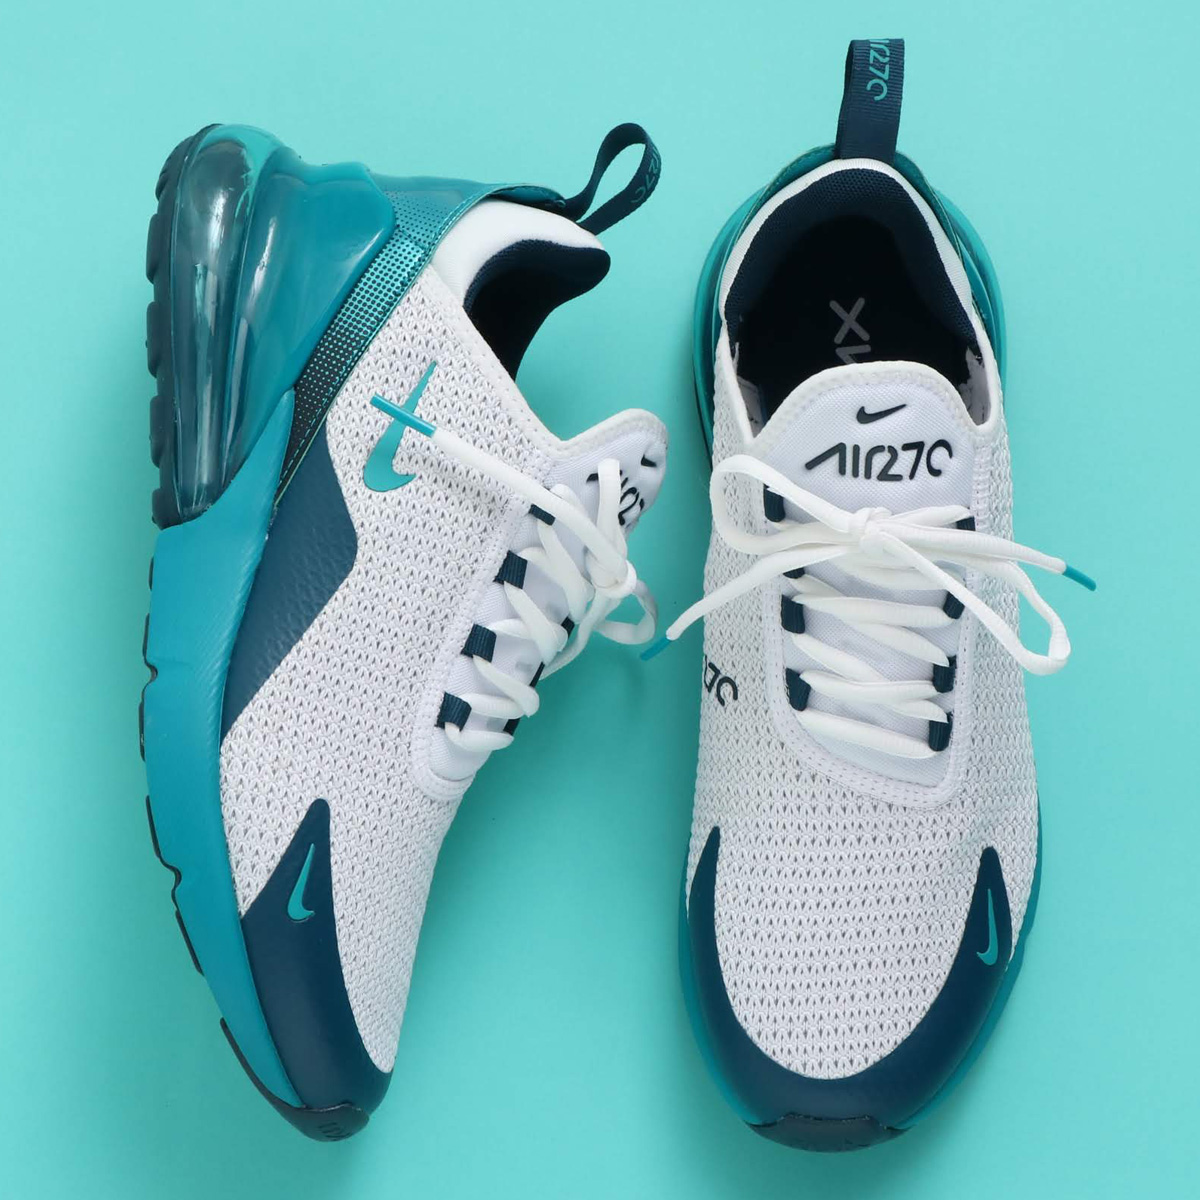 NIKE AIR MAX 270 SE(ナイキ エア マックス 270 SE)WHITE/SPIRIT TEAL-NIGHTSHADE【メンズ スニーカー】19SU-S